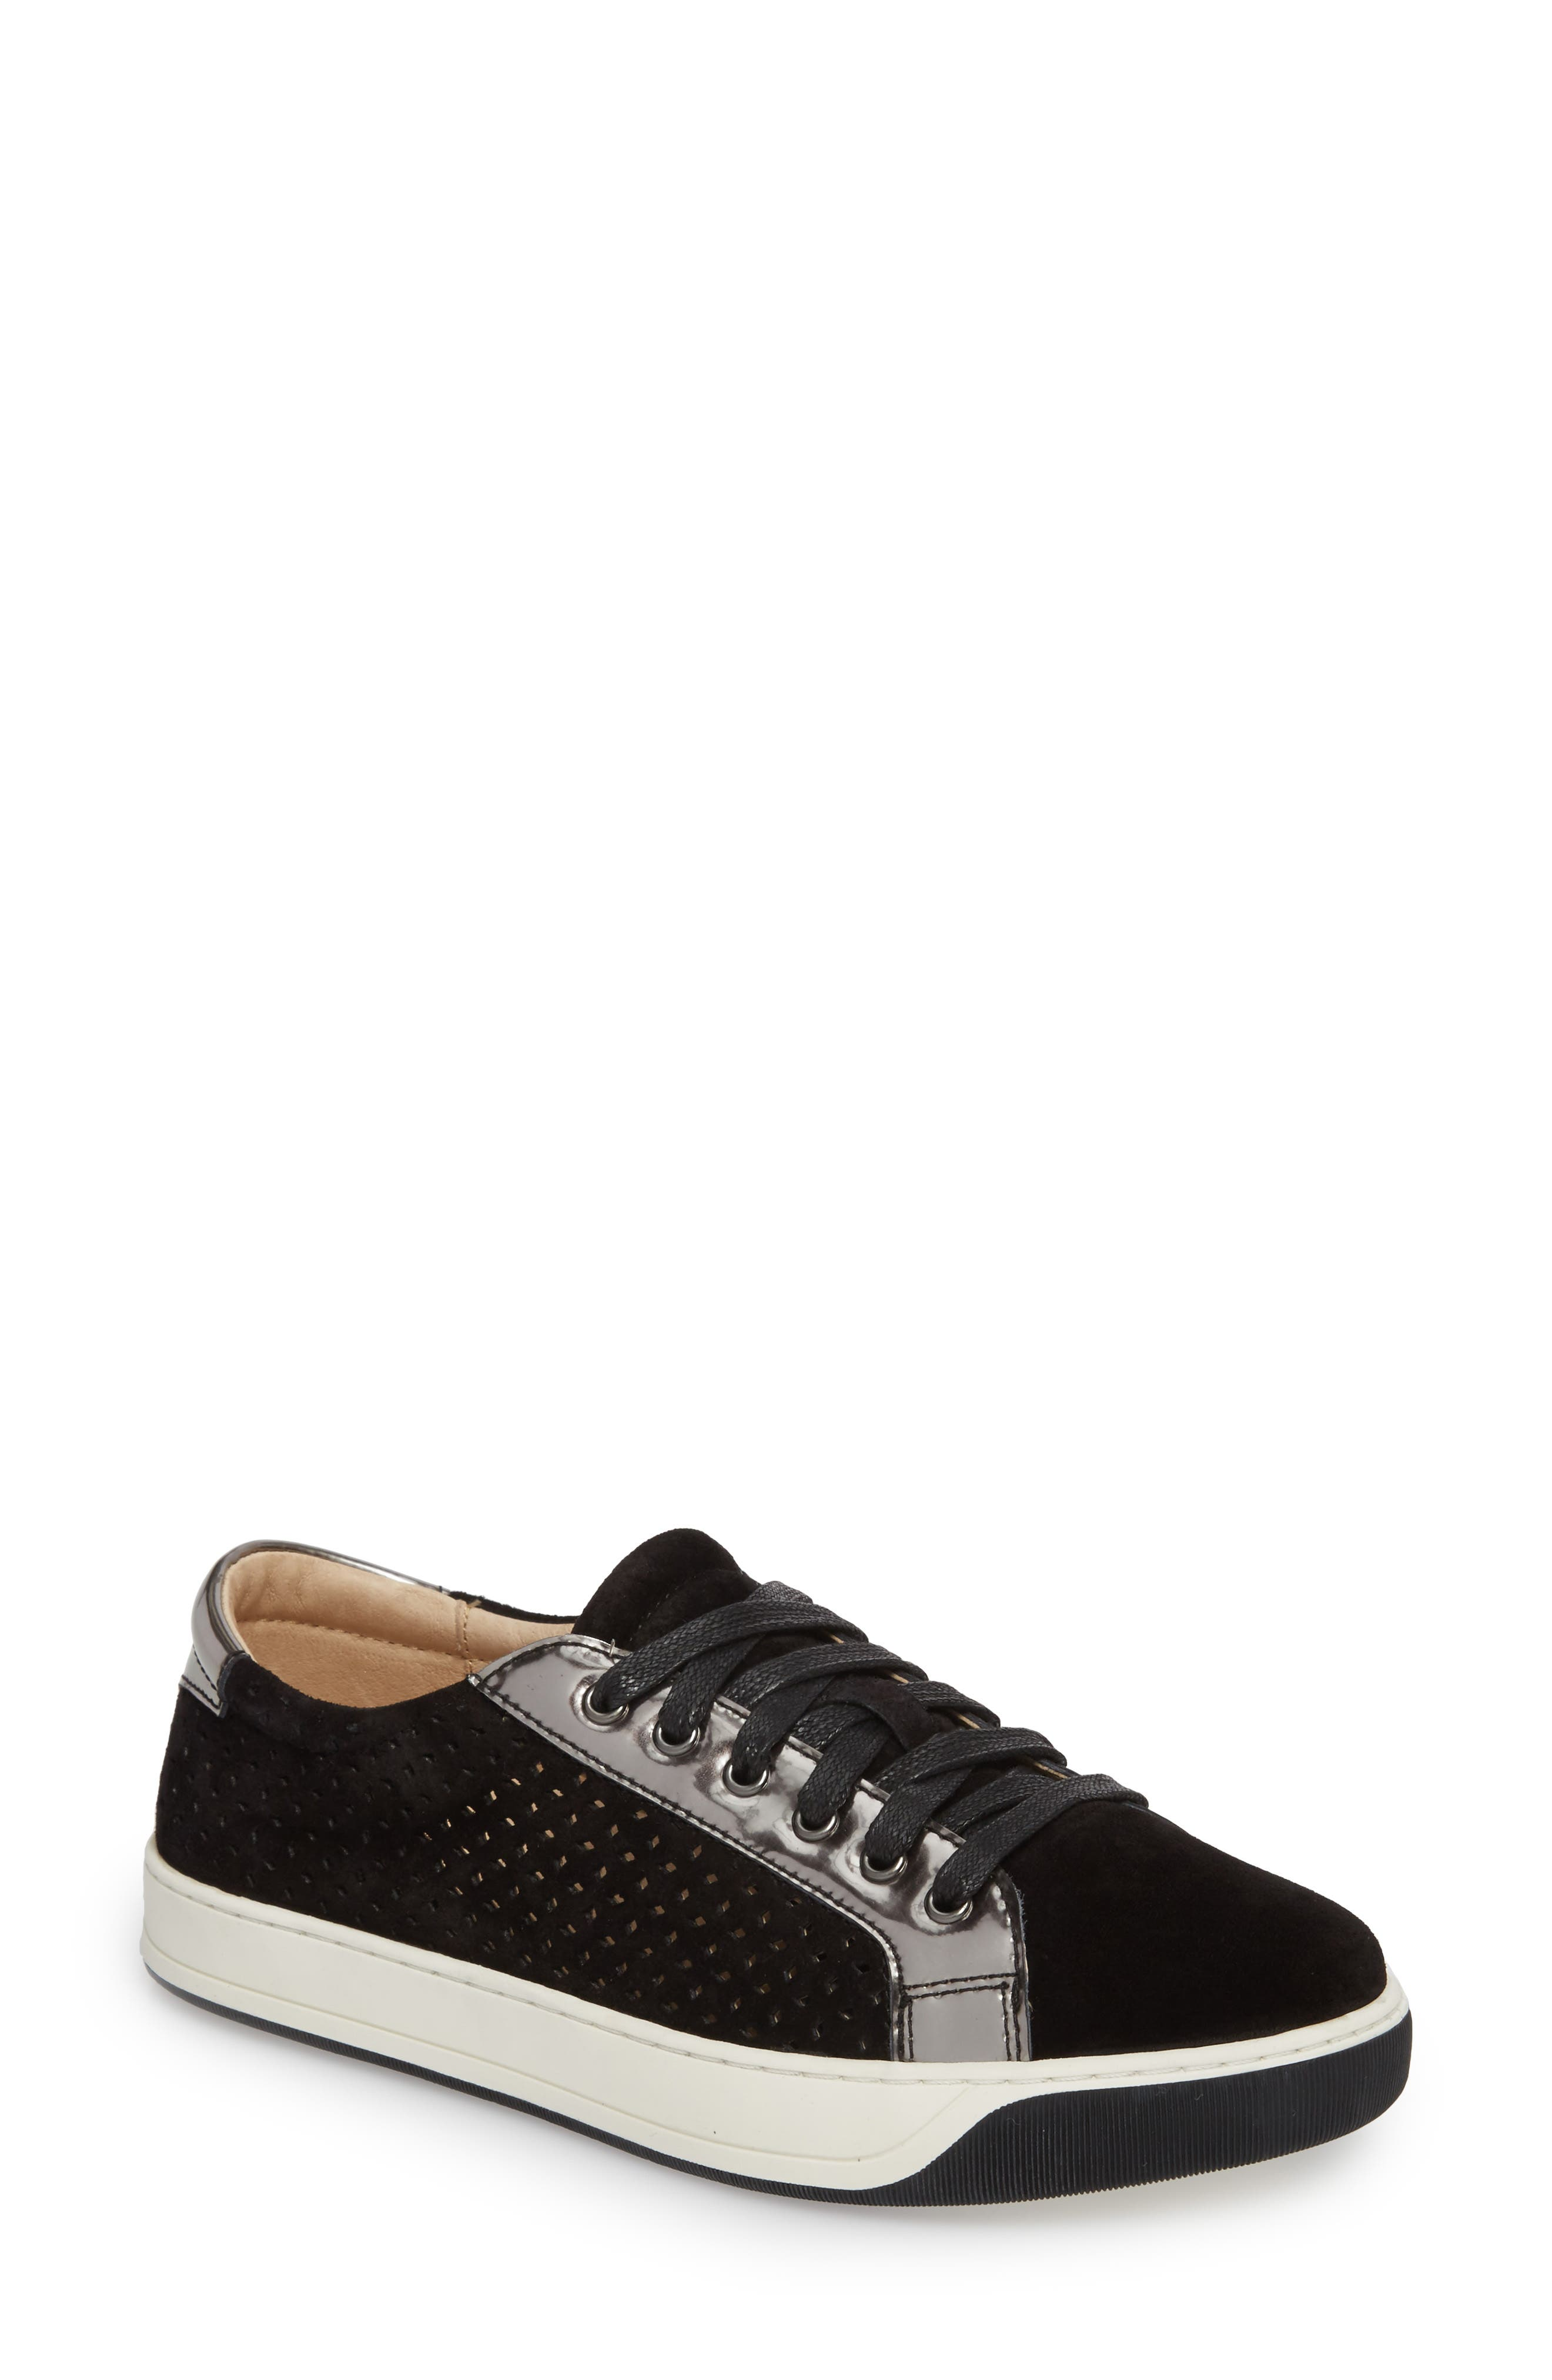 Emerson Perforated Sneaker,                         Main,                         color, 001